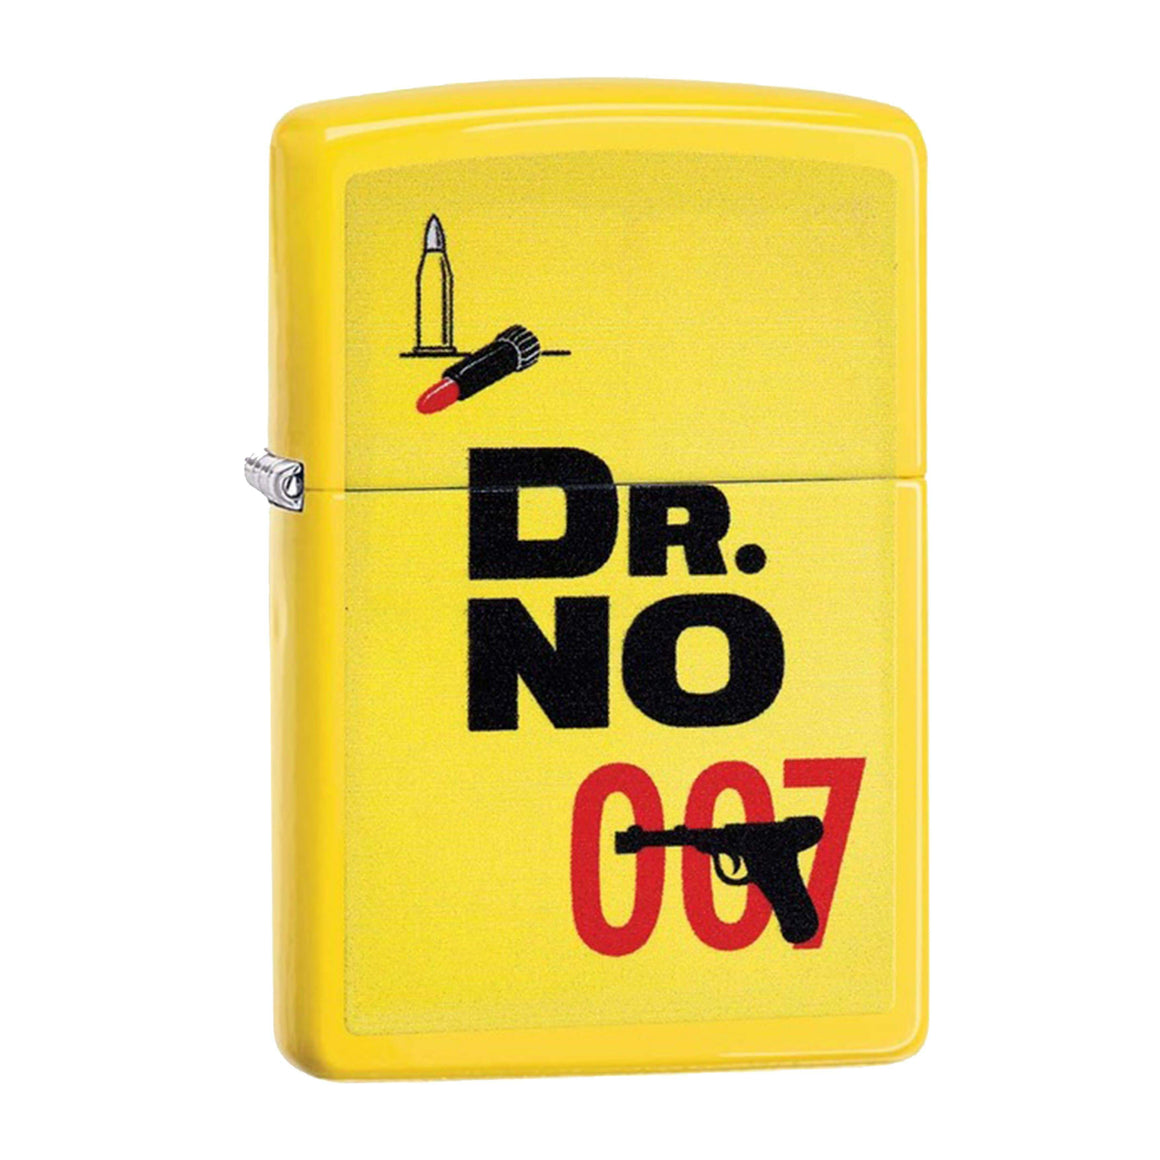 James Bond Zippo Lighter (Dr. No)